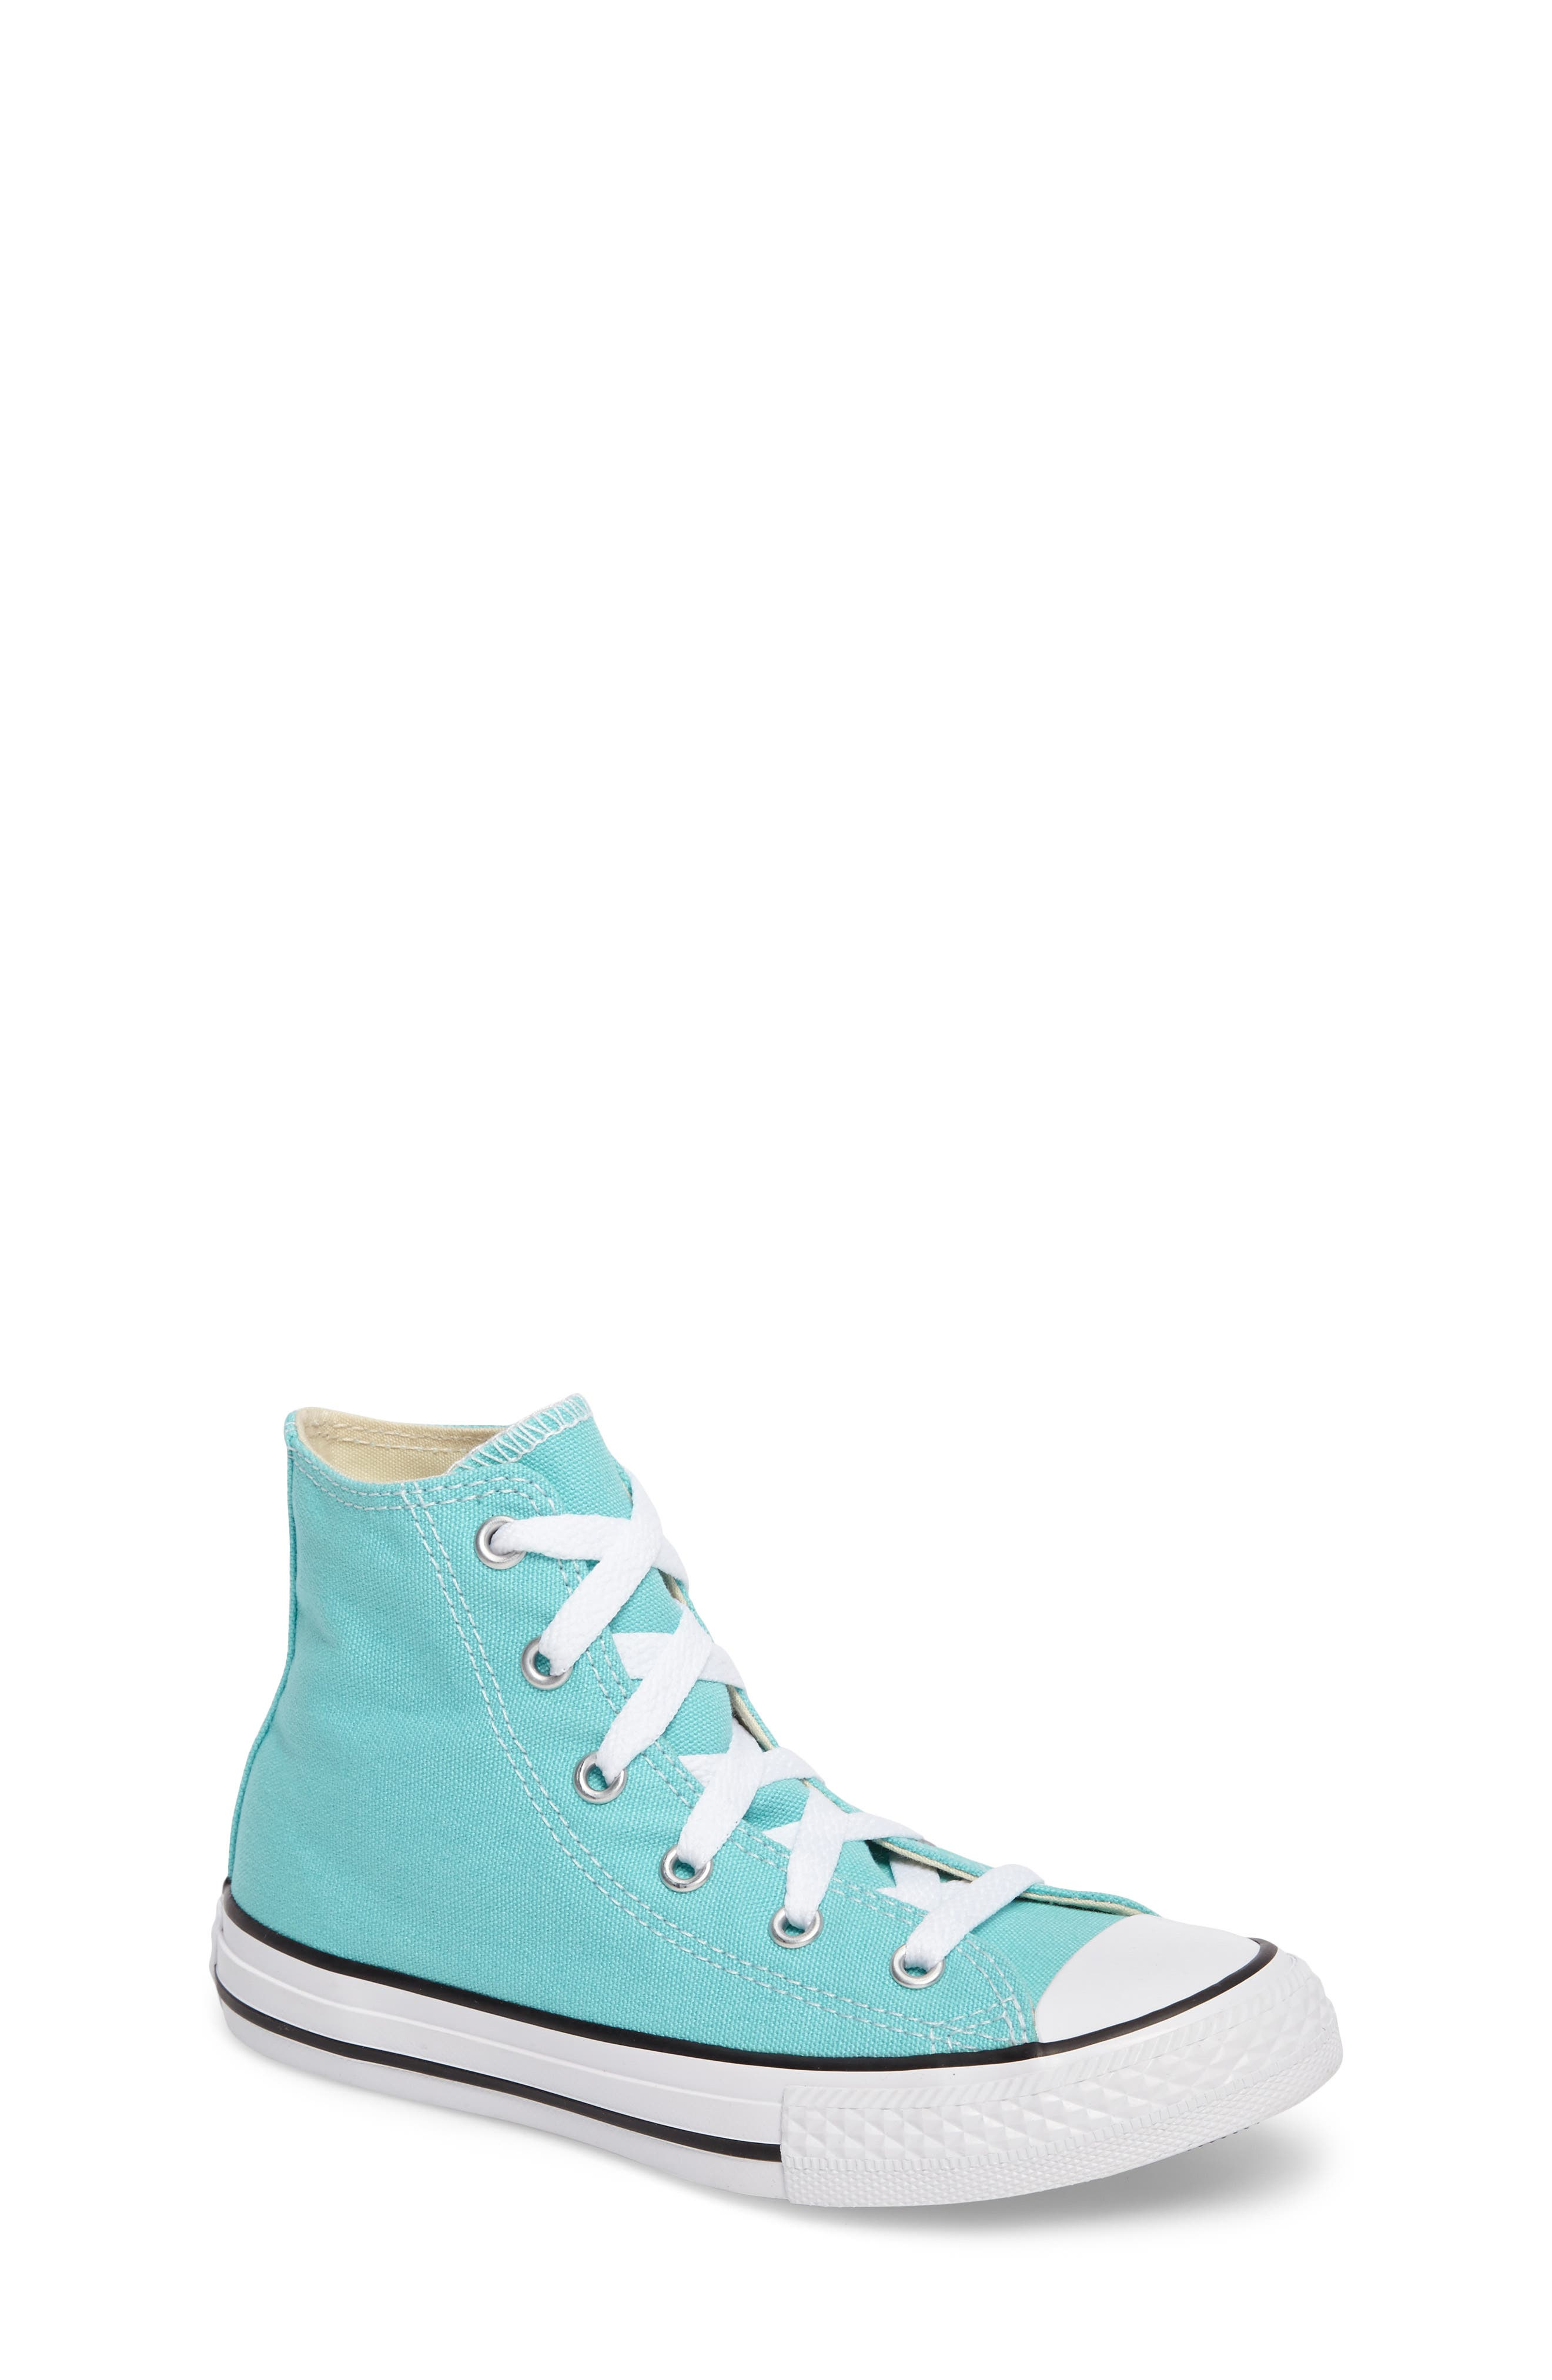 CONVERSE Chuck Taylor<sup>®</sup> All Star<sup>®</sup> High Top Sneaker